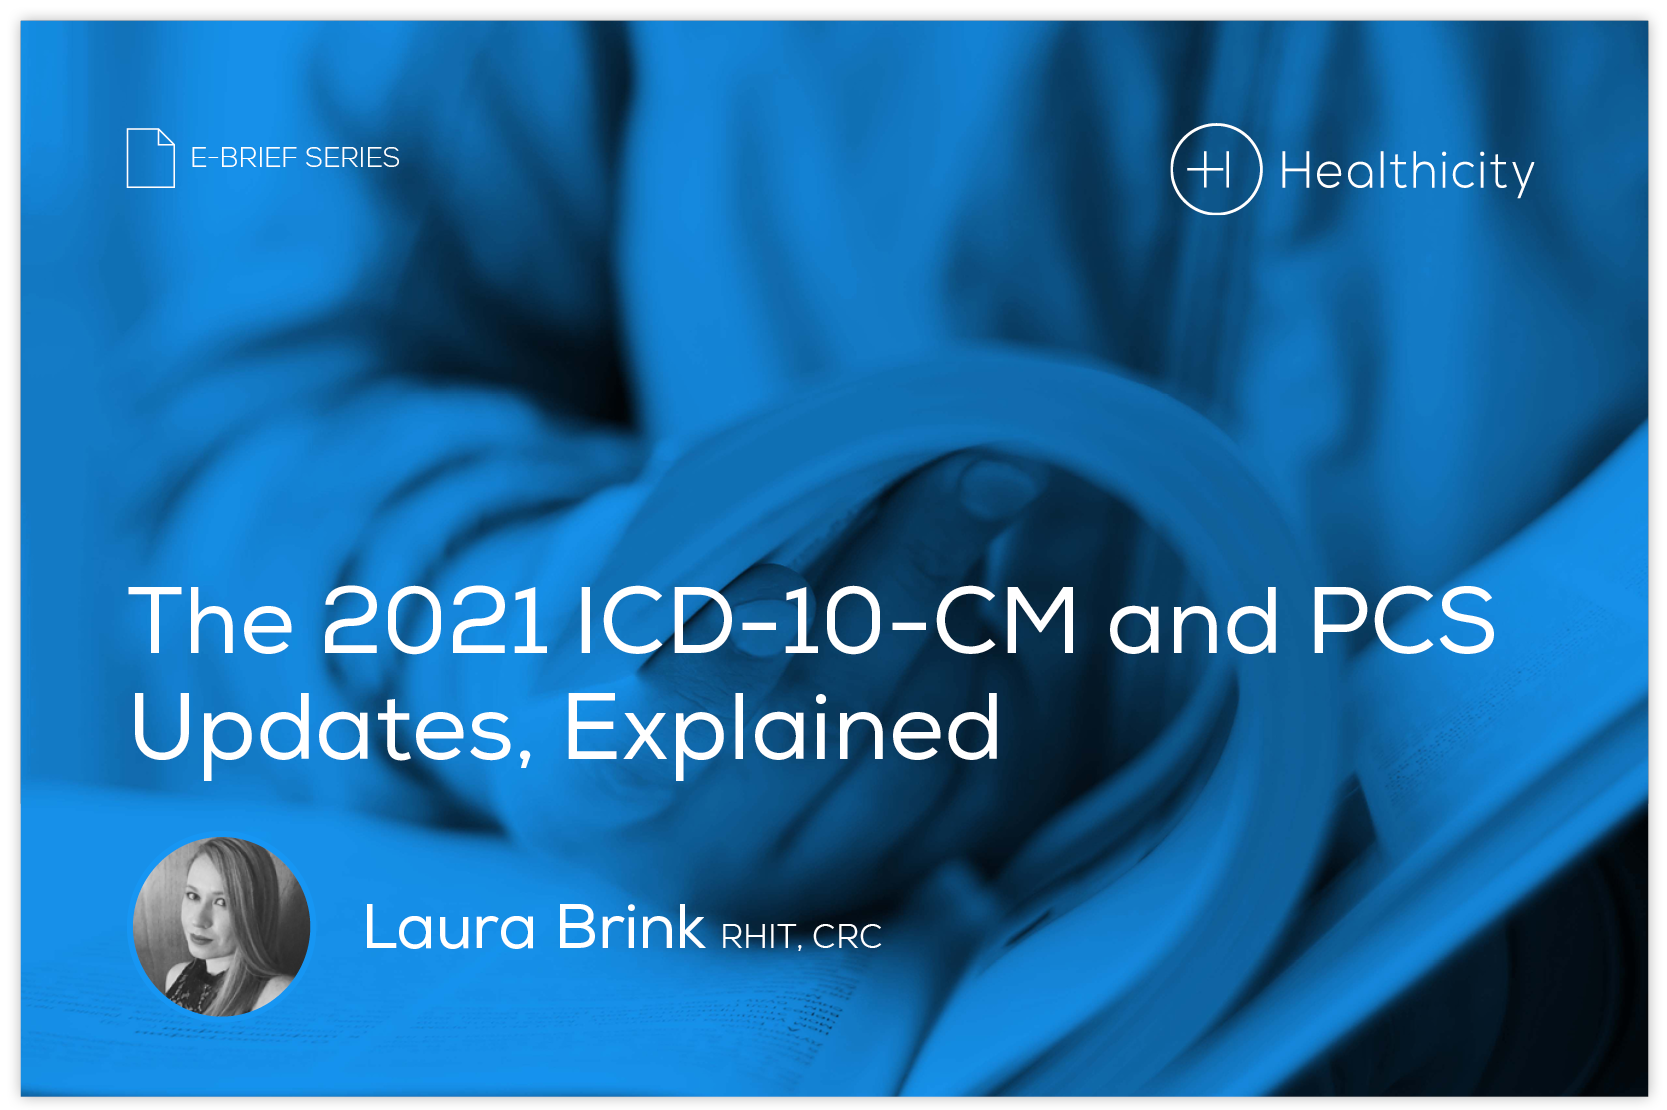 Download the eBrief - The 2021 ICD-10-CM and PCS Updates, Explained